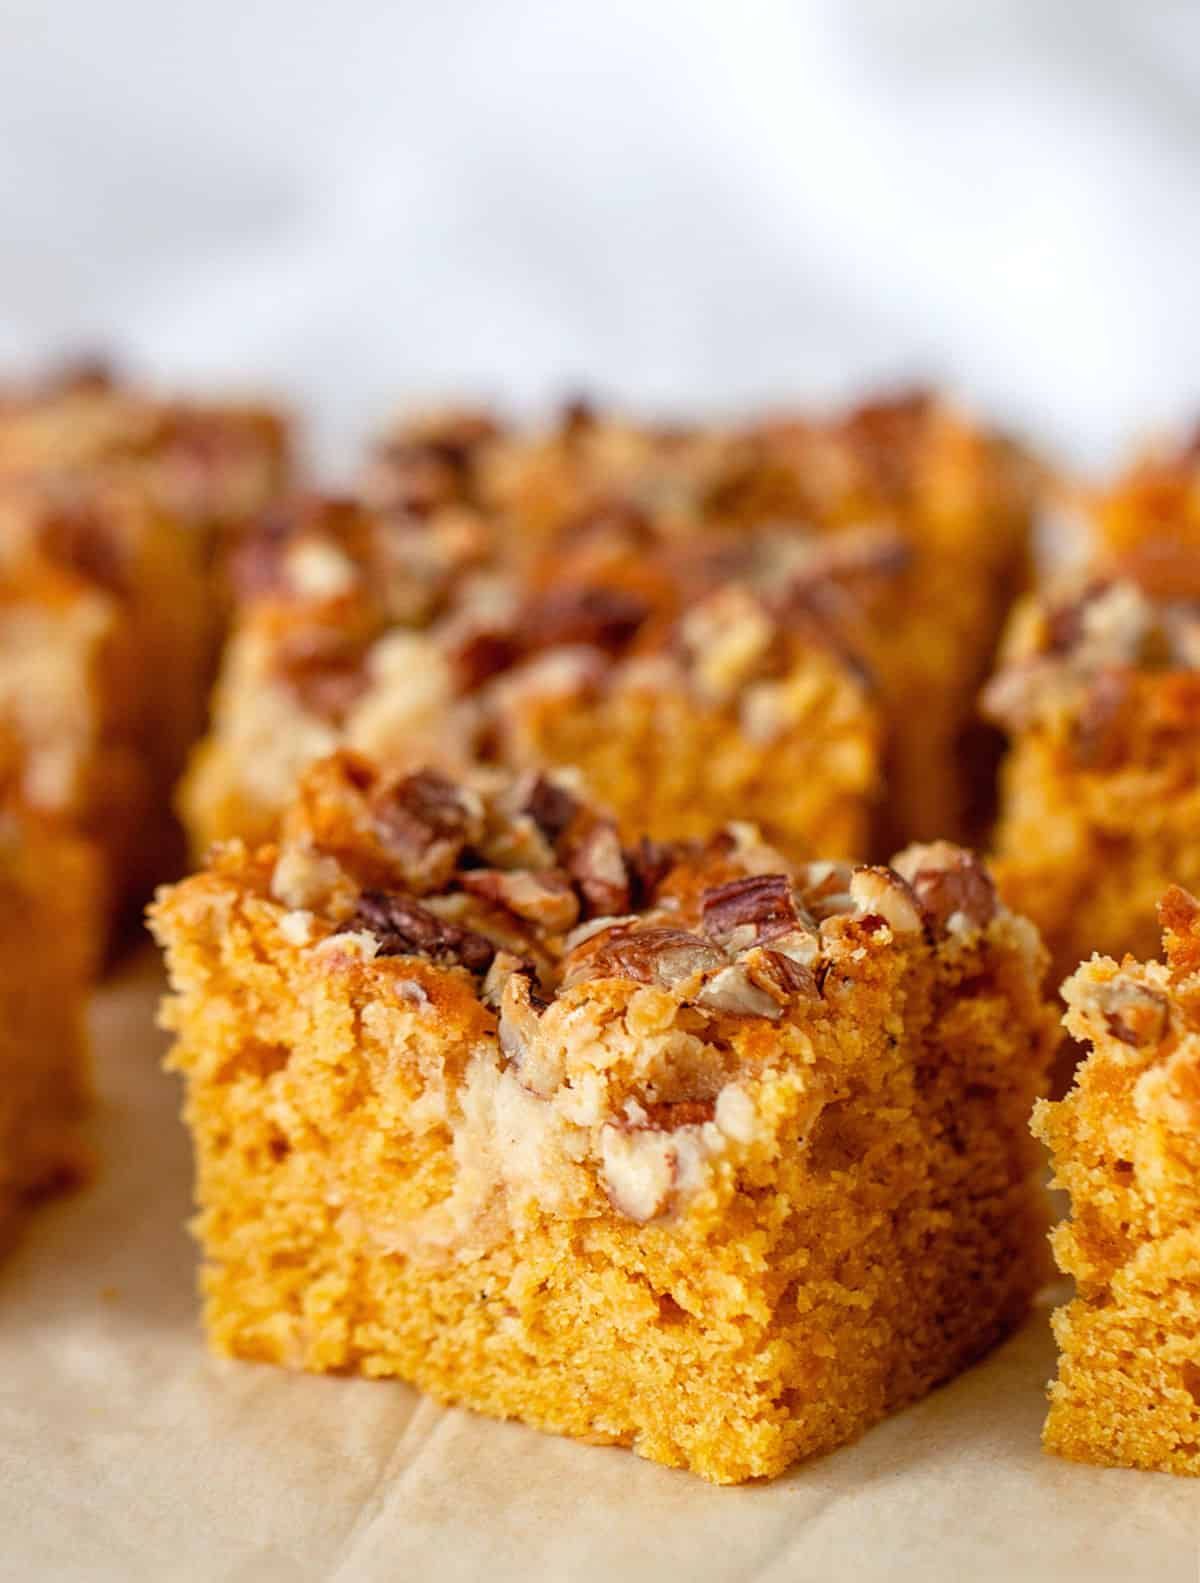 One main square of pecan topped pumpkin cake, others blurred in grey background